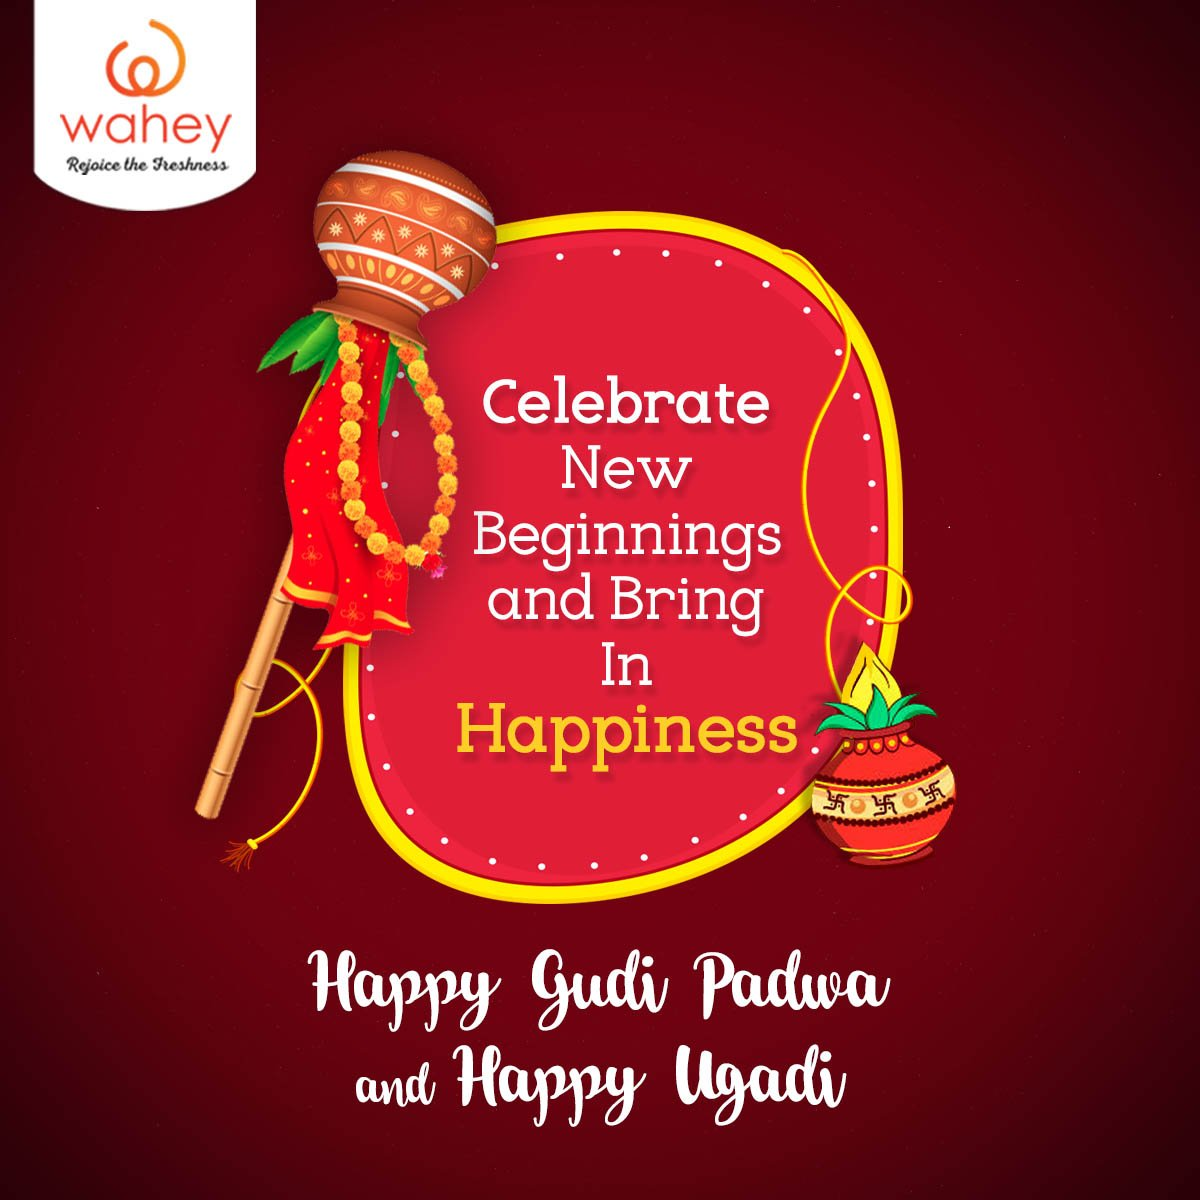 #Wahey! It's new year! Happy Gudi Padwa and Happy Ugadi everyone :) #Happy #GudiPadwa #Ugadi<br>http://pic.twitter.com/RdRzhUuTWj